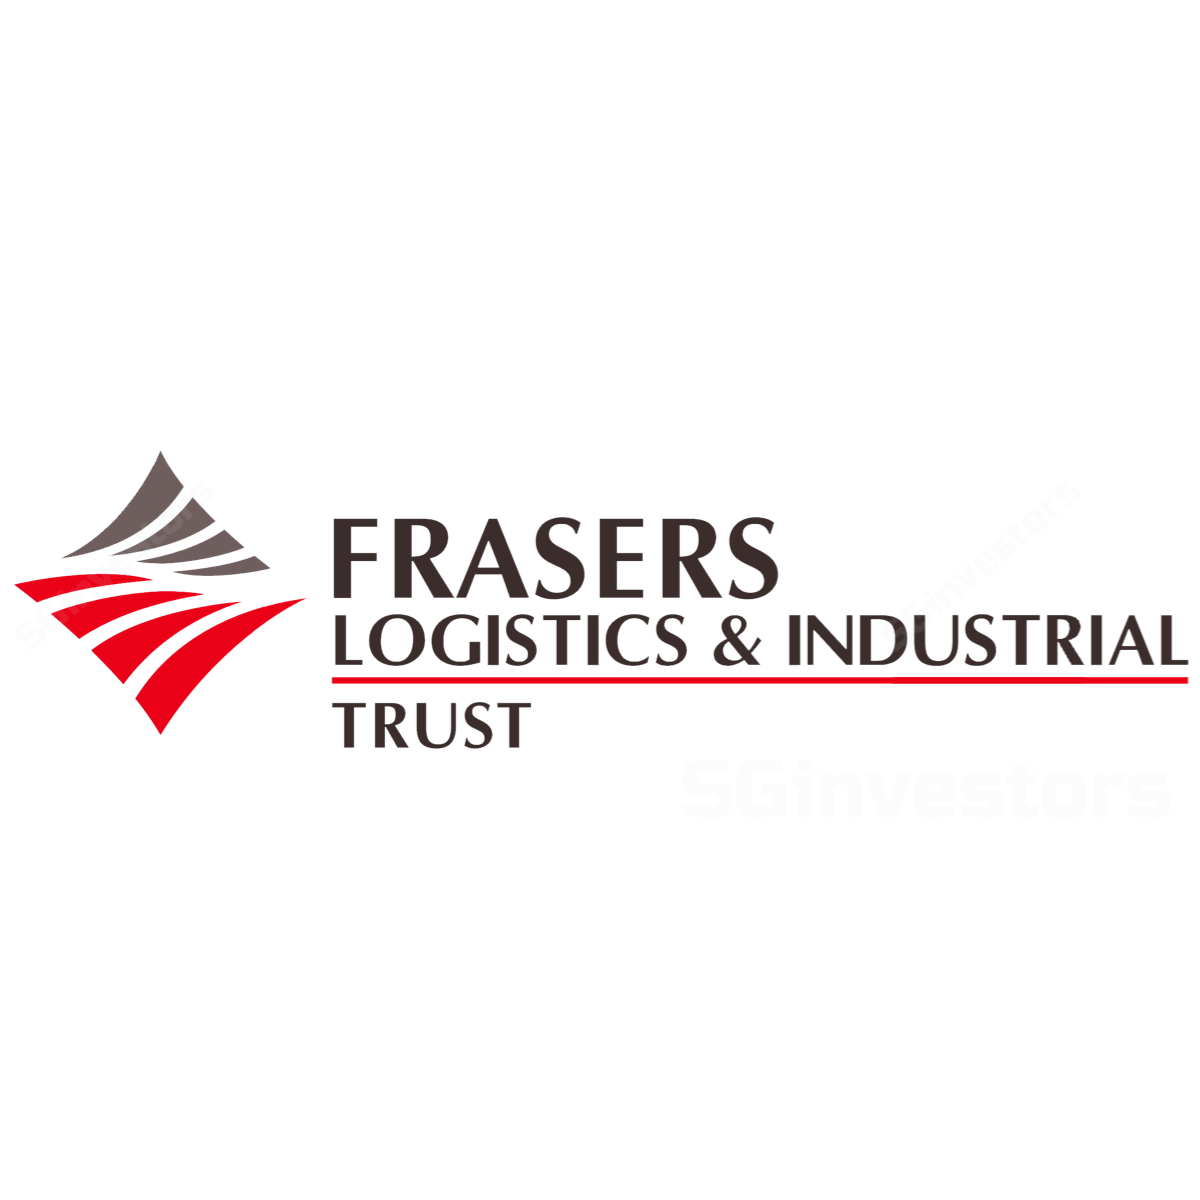 Frasers Logistics & Industrial Trust (FLT SP) - UOB Kay Hian 2017-05-08: 2QFY17 Sunny Side Down Under